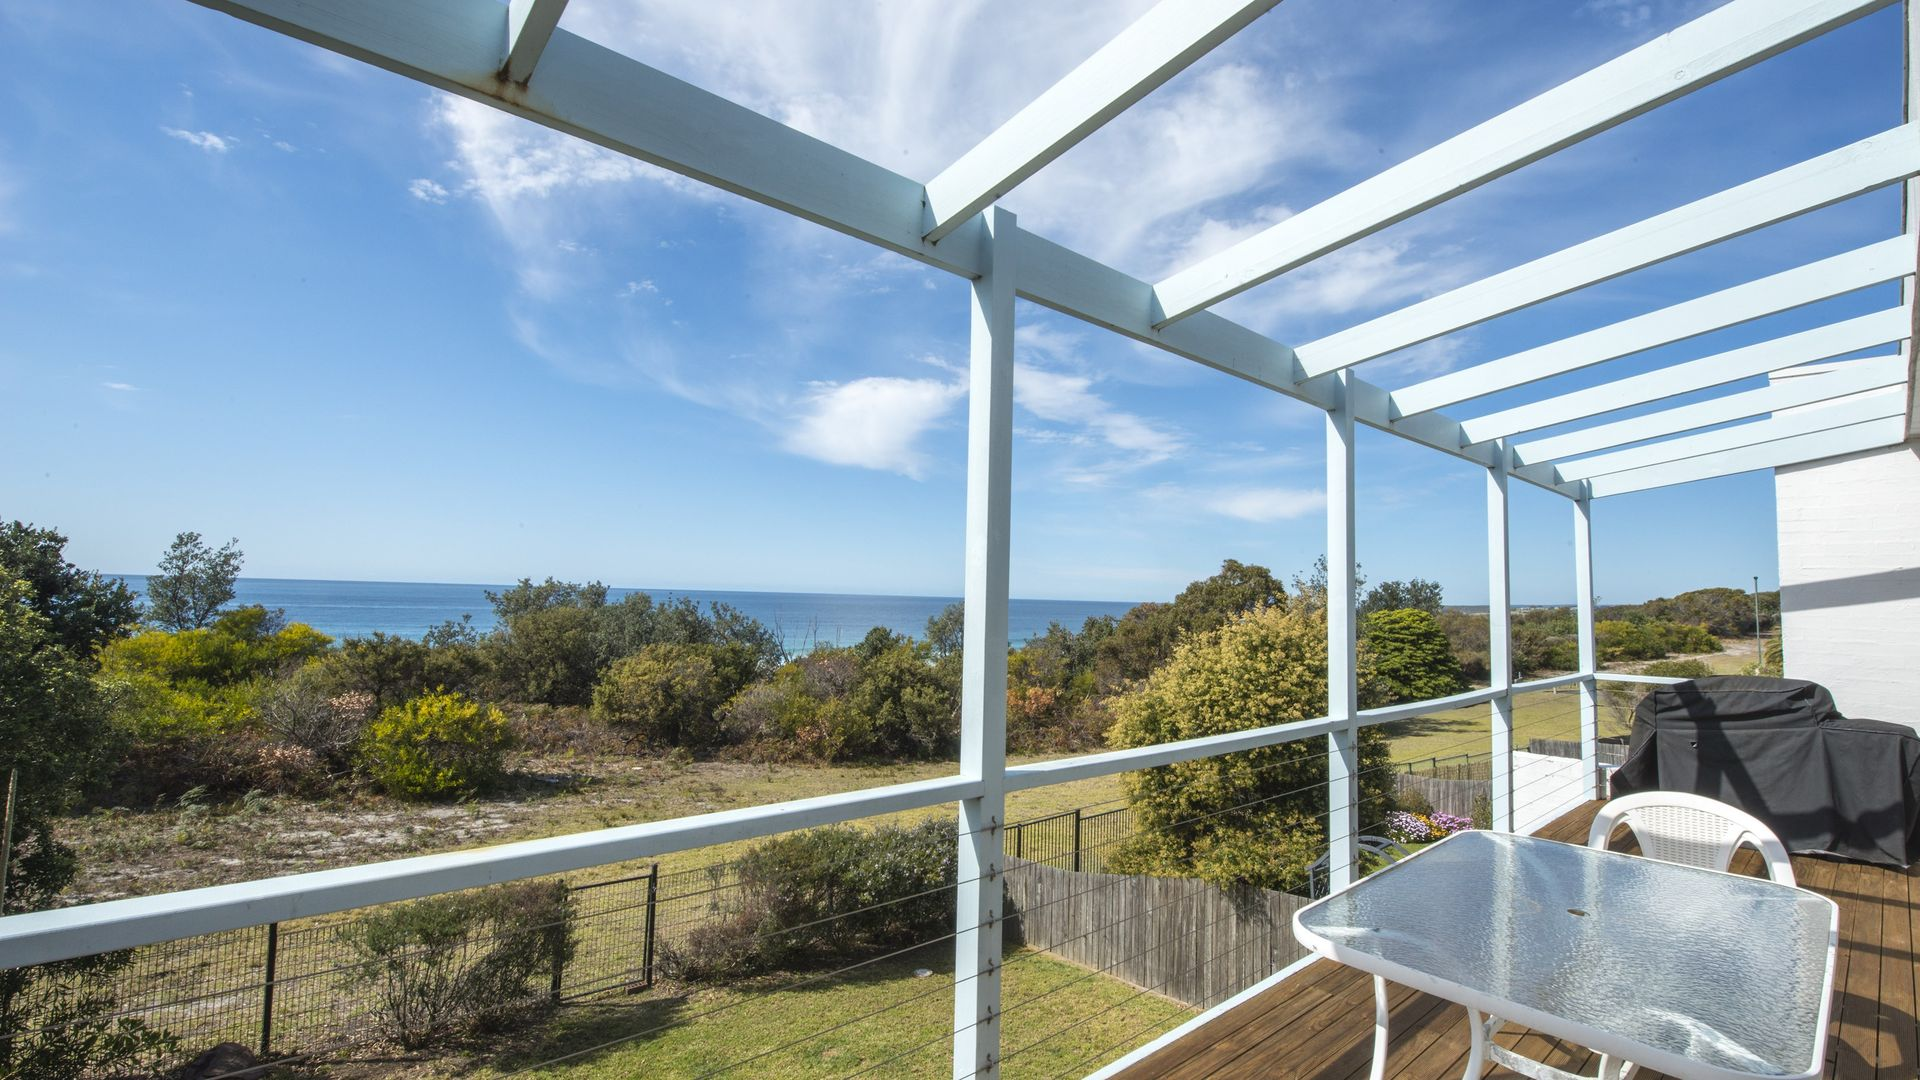 2/180 PACIFIC WAY, Tura Beach NSW 2548, Image 1